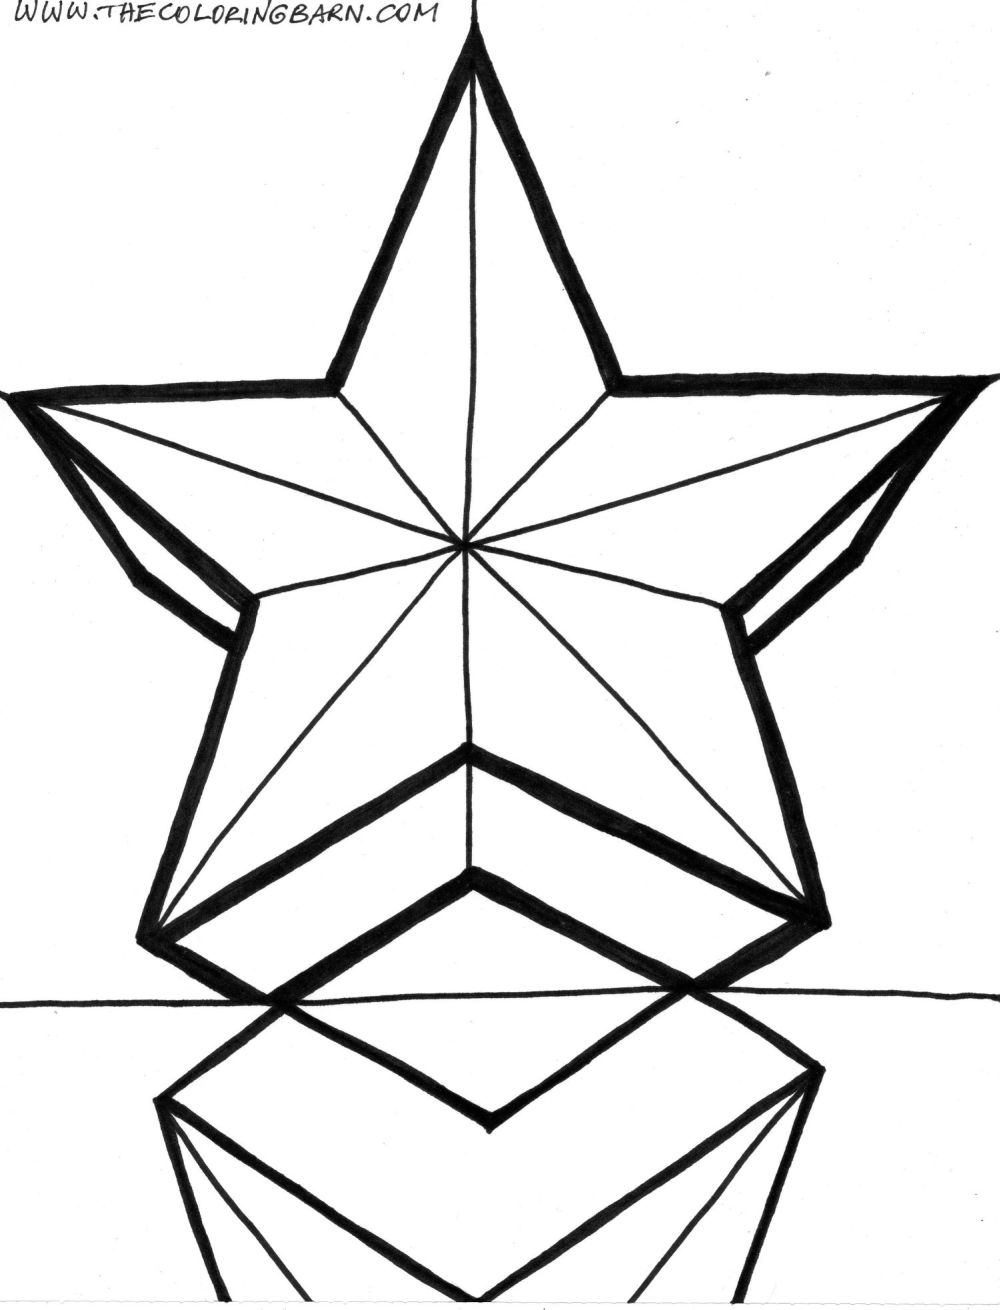 colouring pages stars 6 star coloring pages free premium templates pages colouring stars 1 1